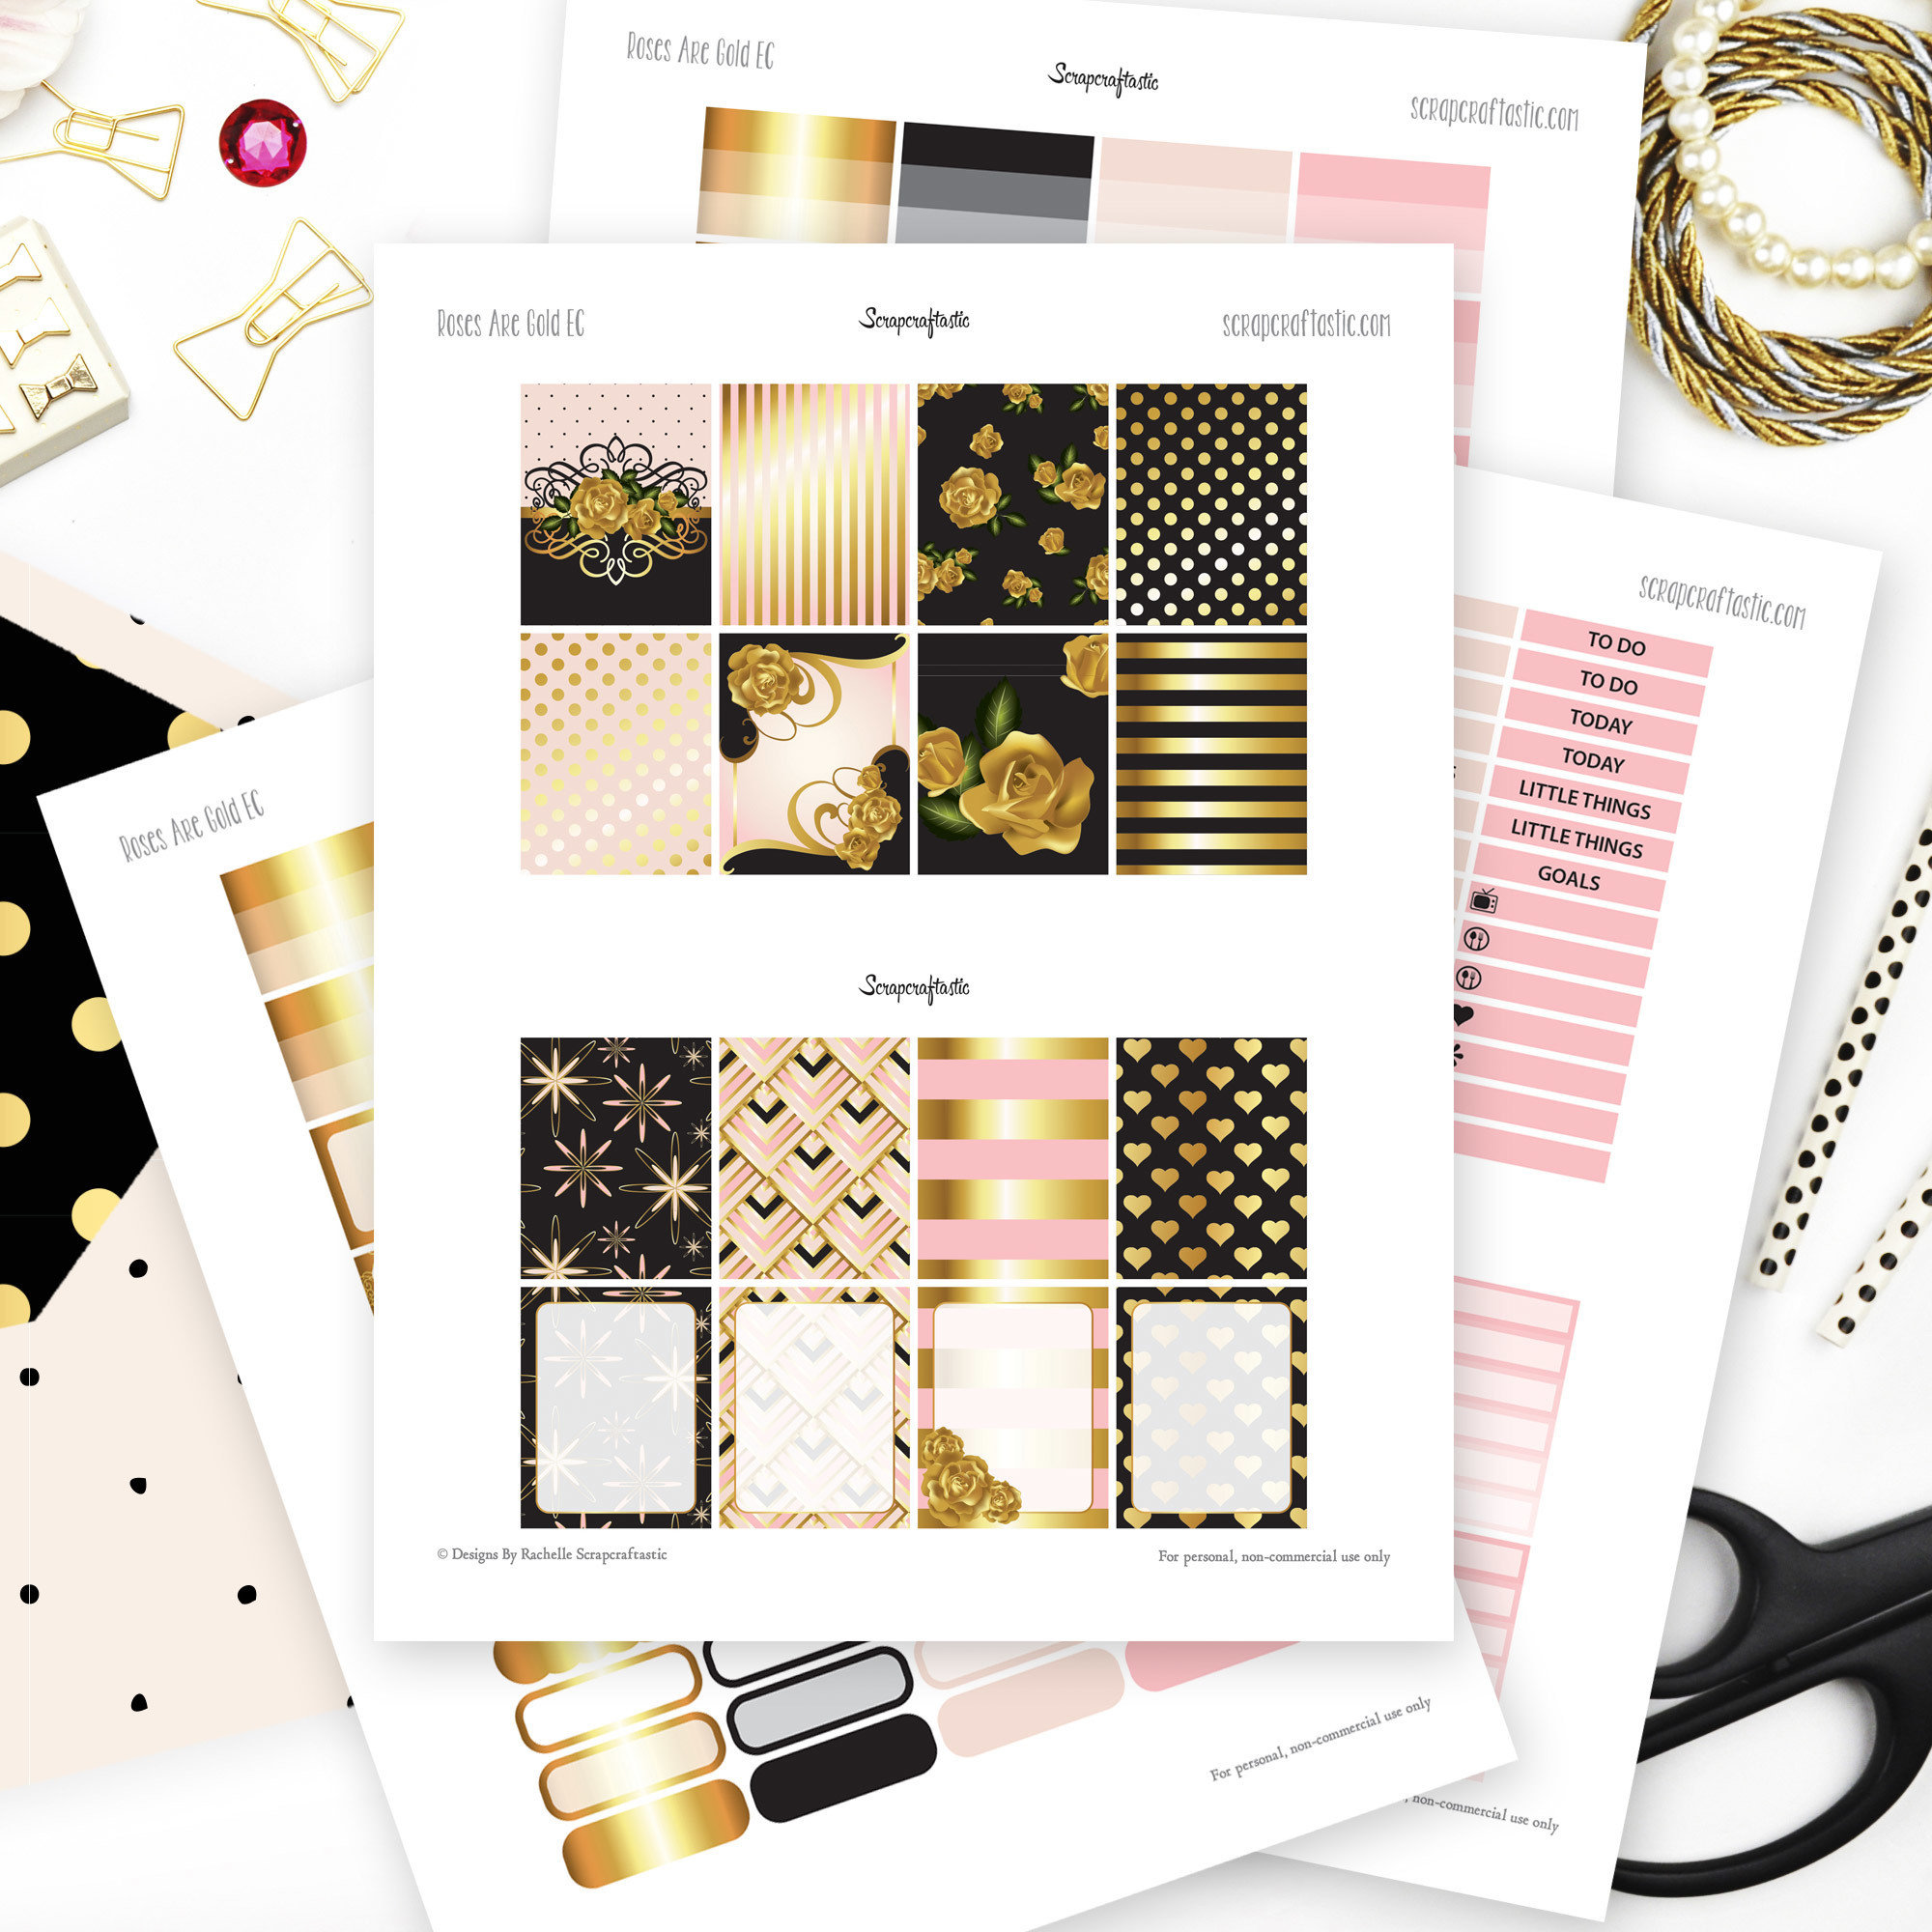 Roses are Gold Printable Planner Stickers dbr_rosesaregold